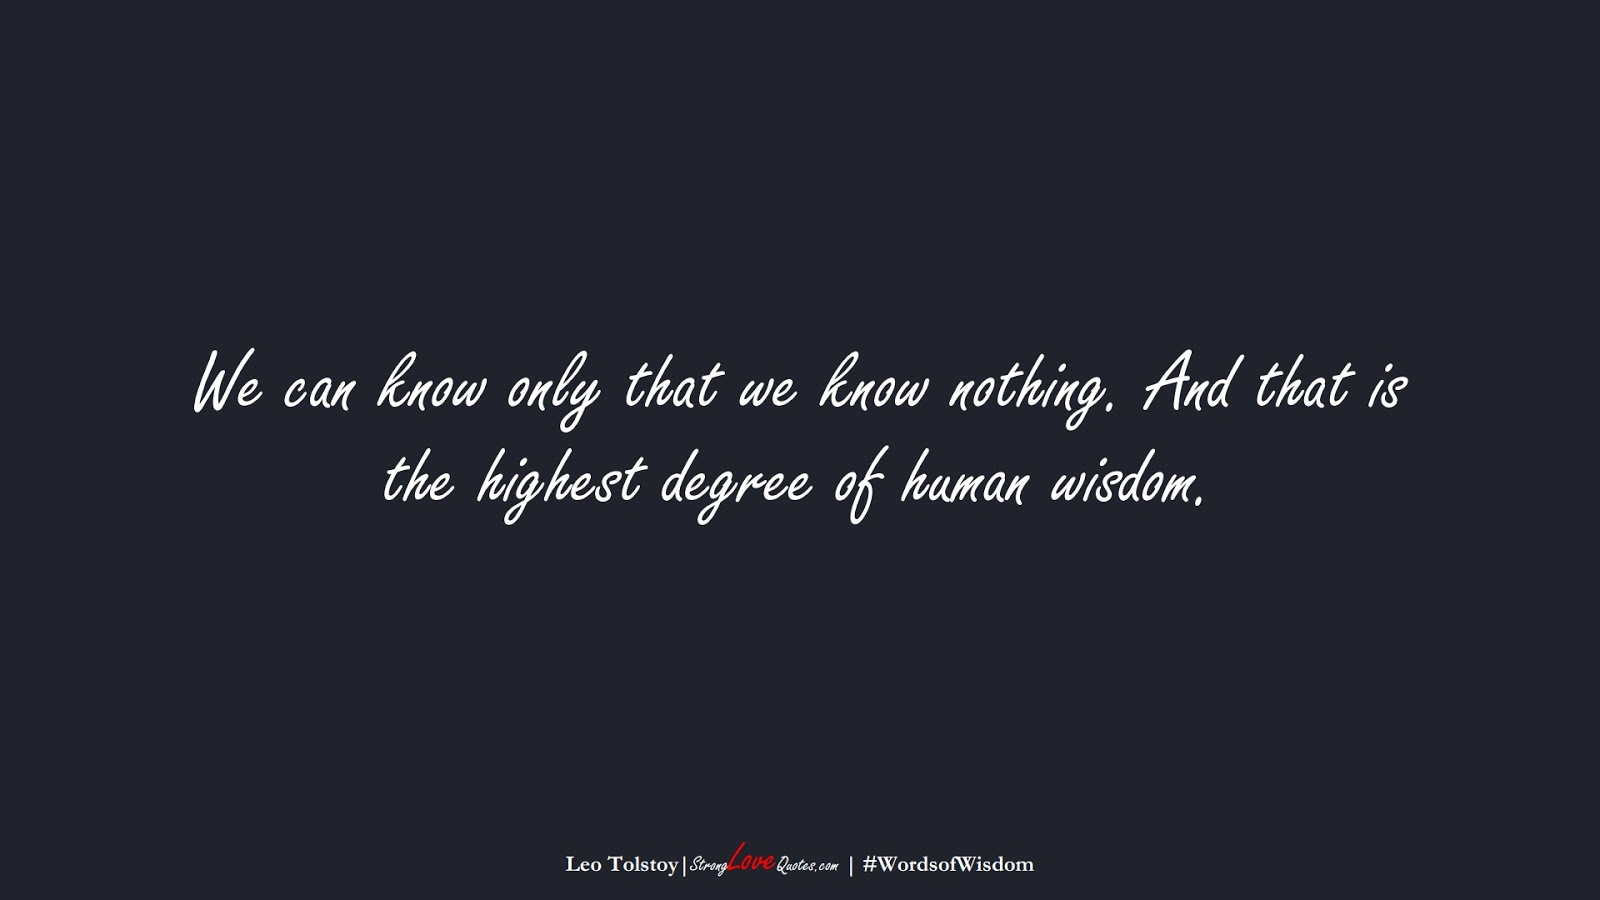 We can know only that we know nothing. And that is the highest degree of human wisdom. (Leo Tolstoy);  #WordsofWisdom